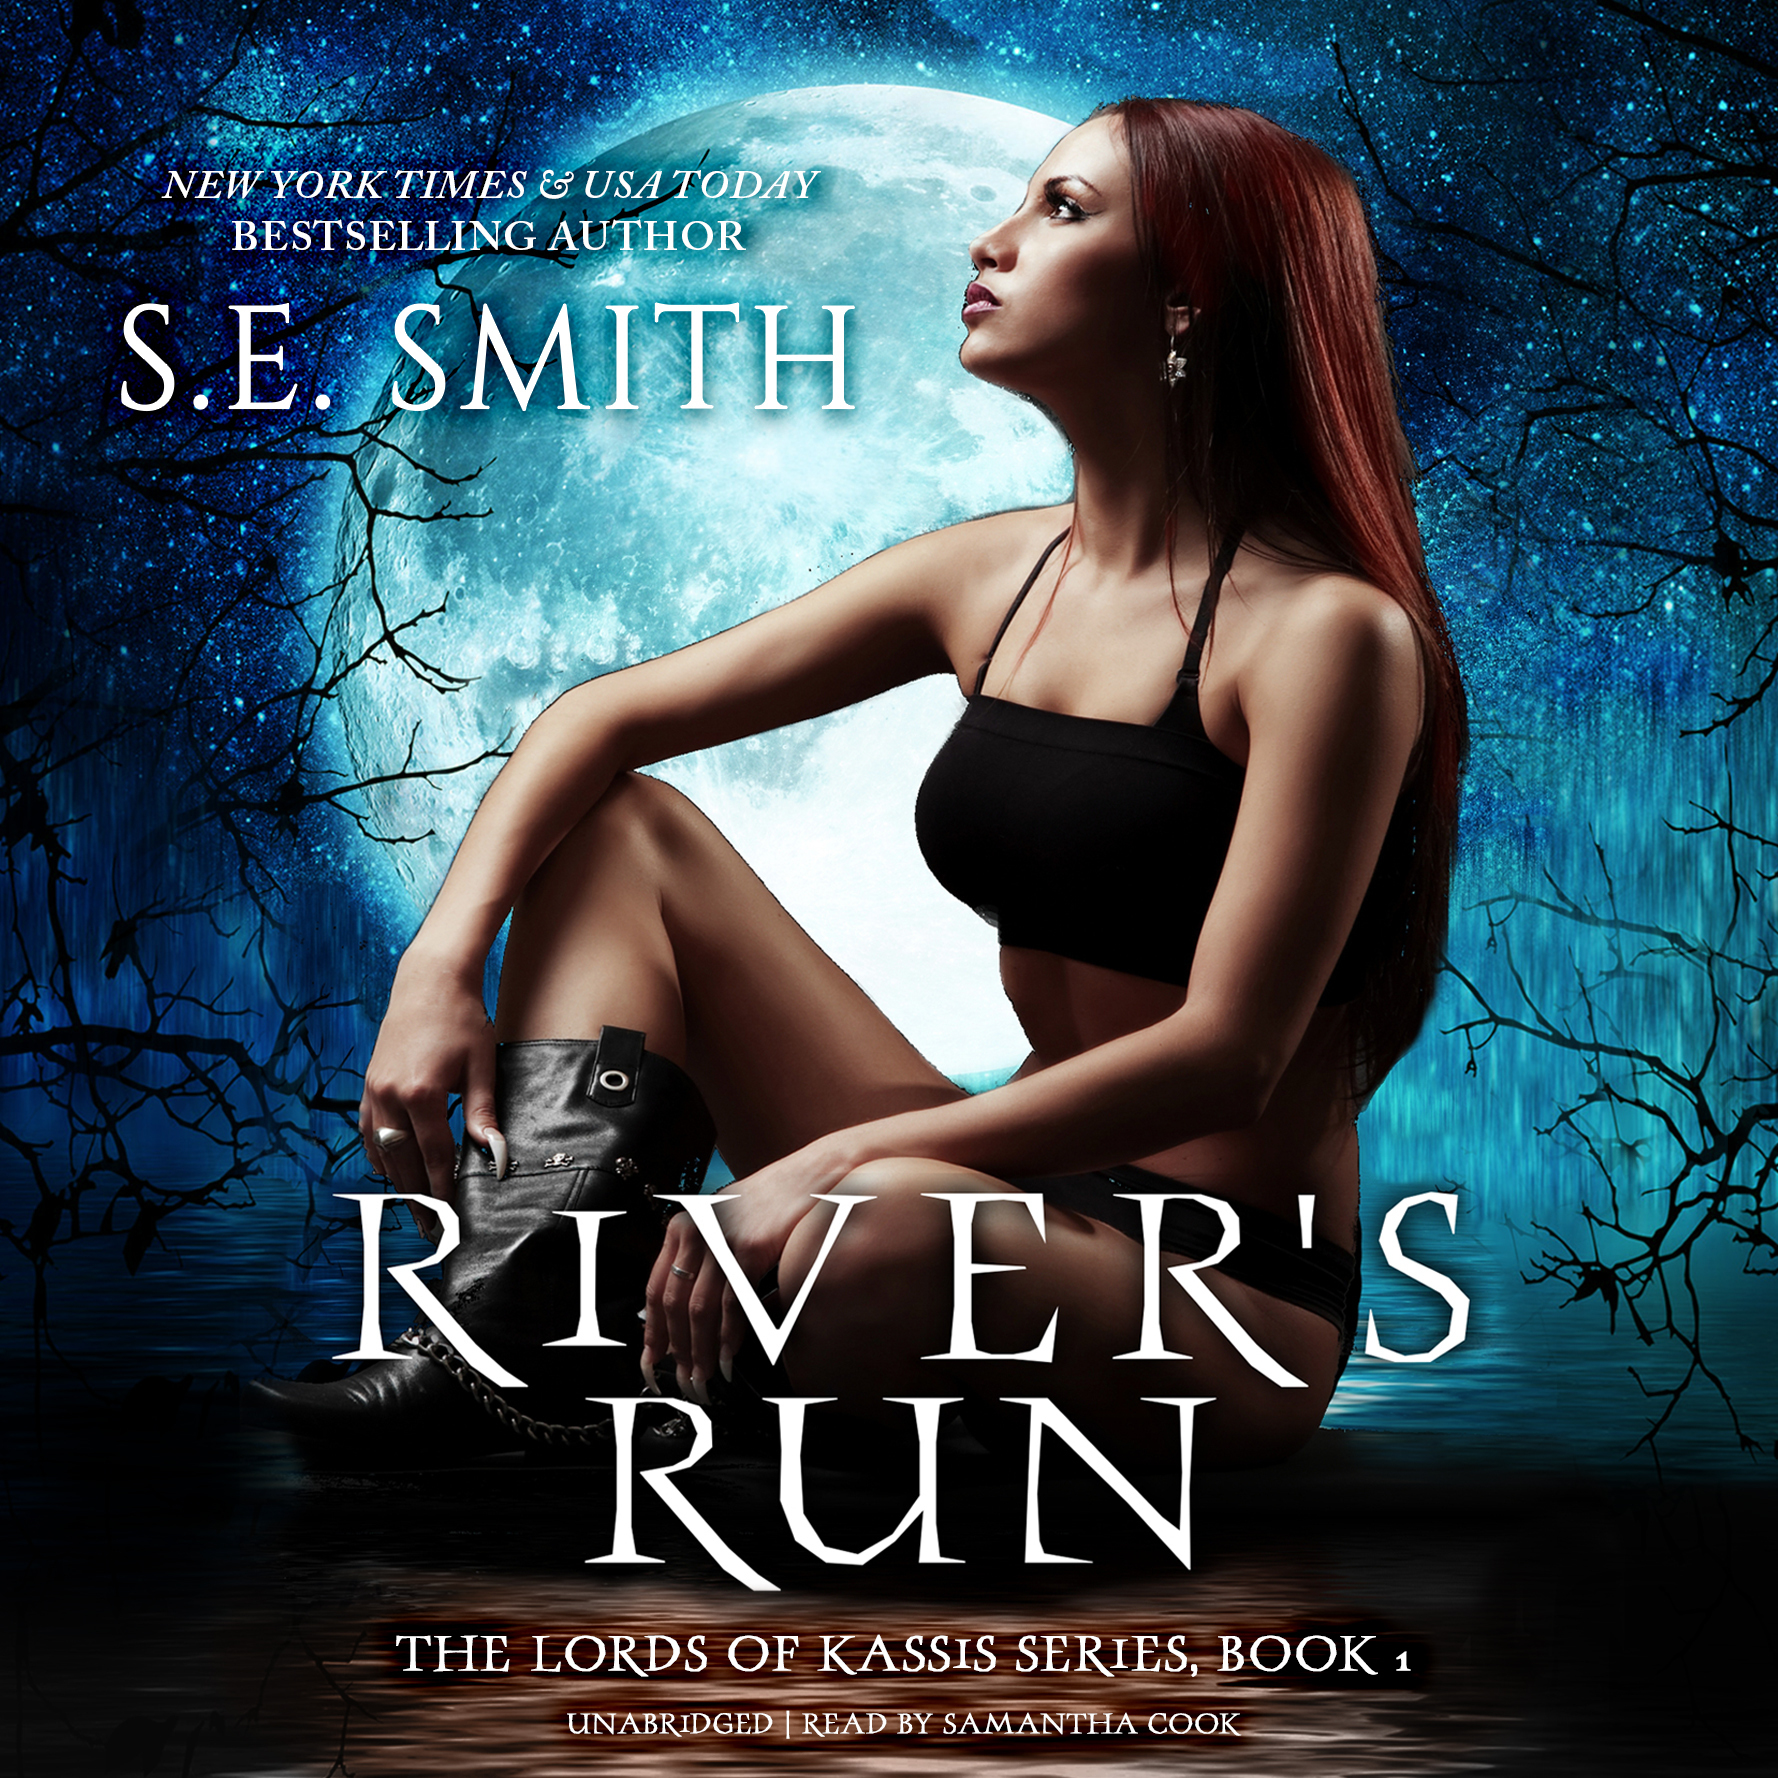 Printable River's Run Audiobook Cover Art